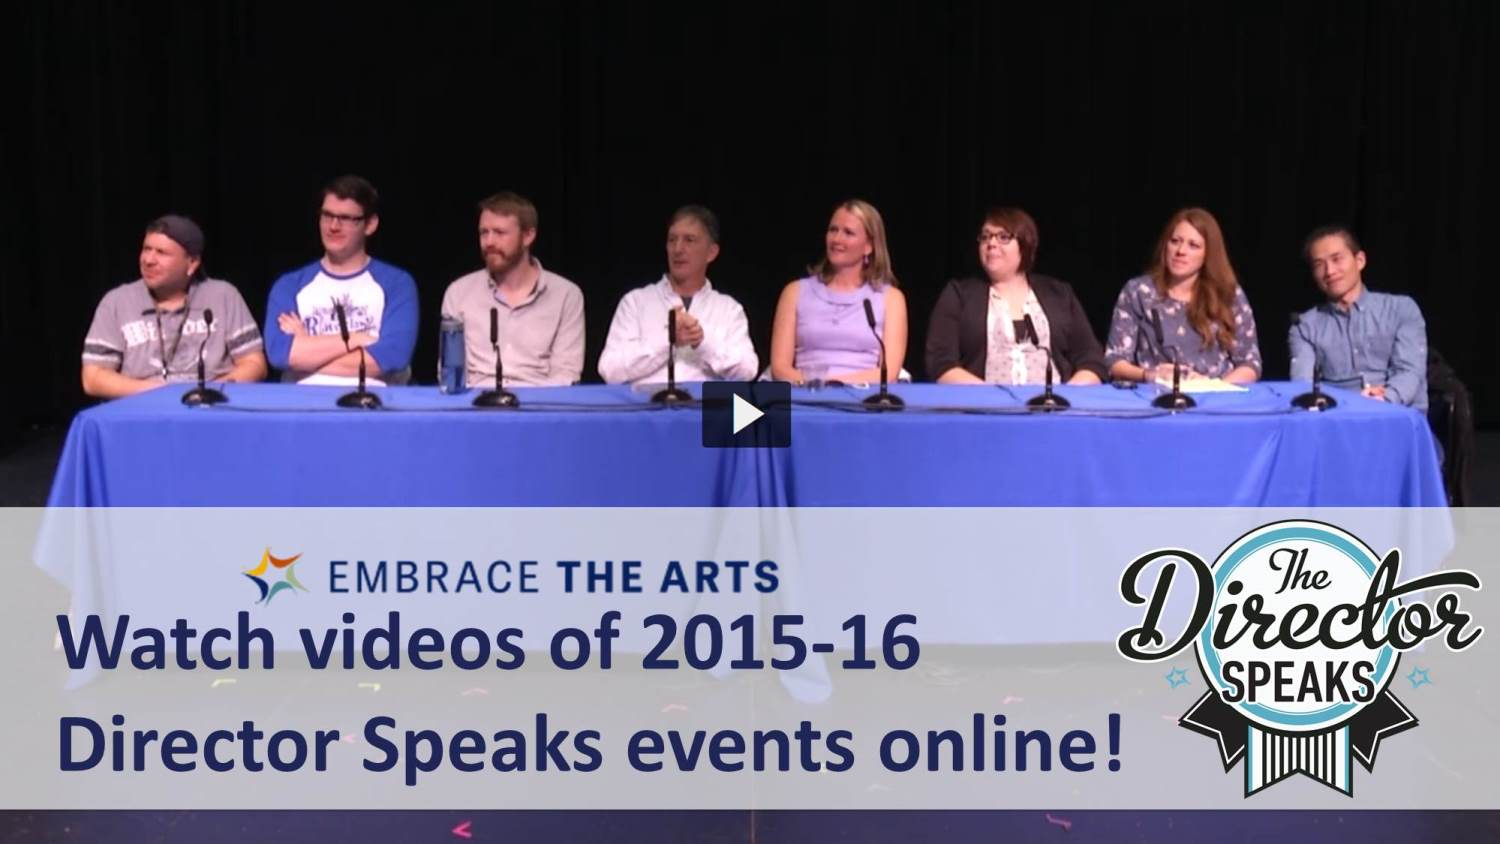 Show more about Watch past Director Speaks events online!